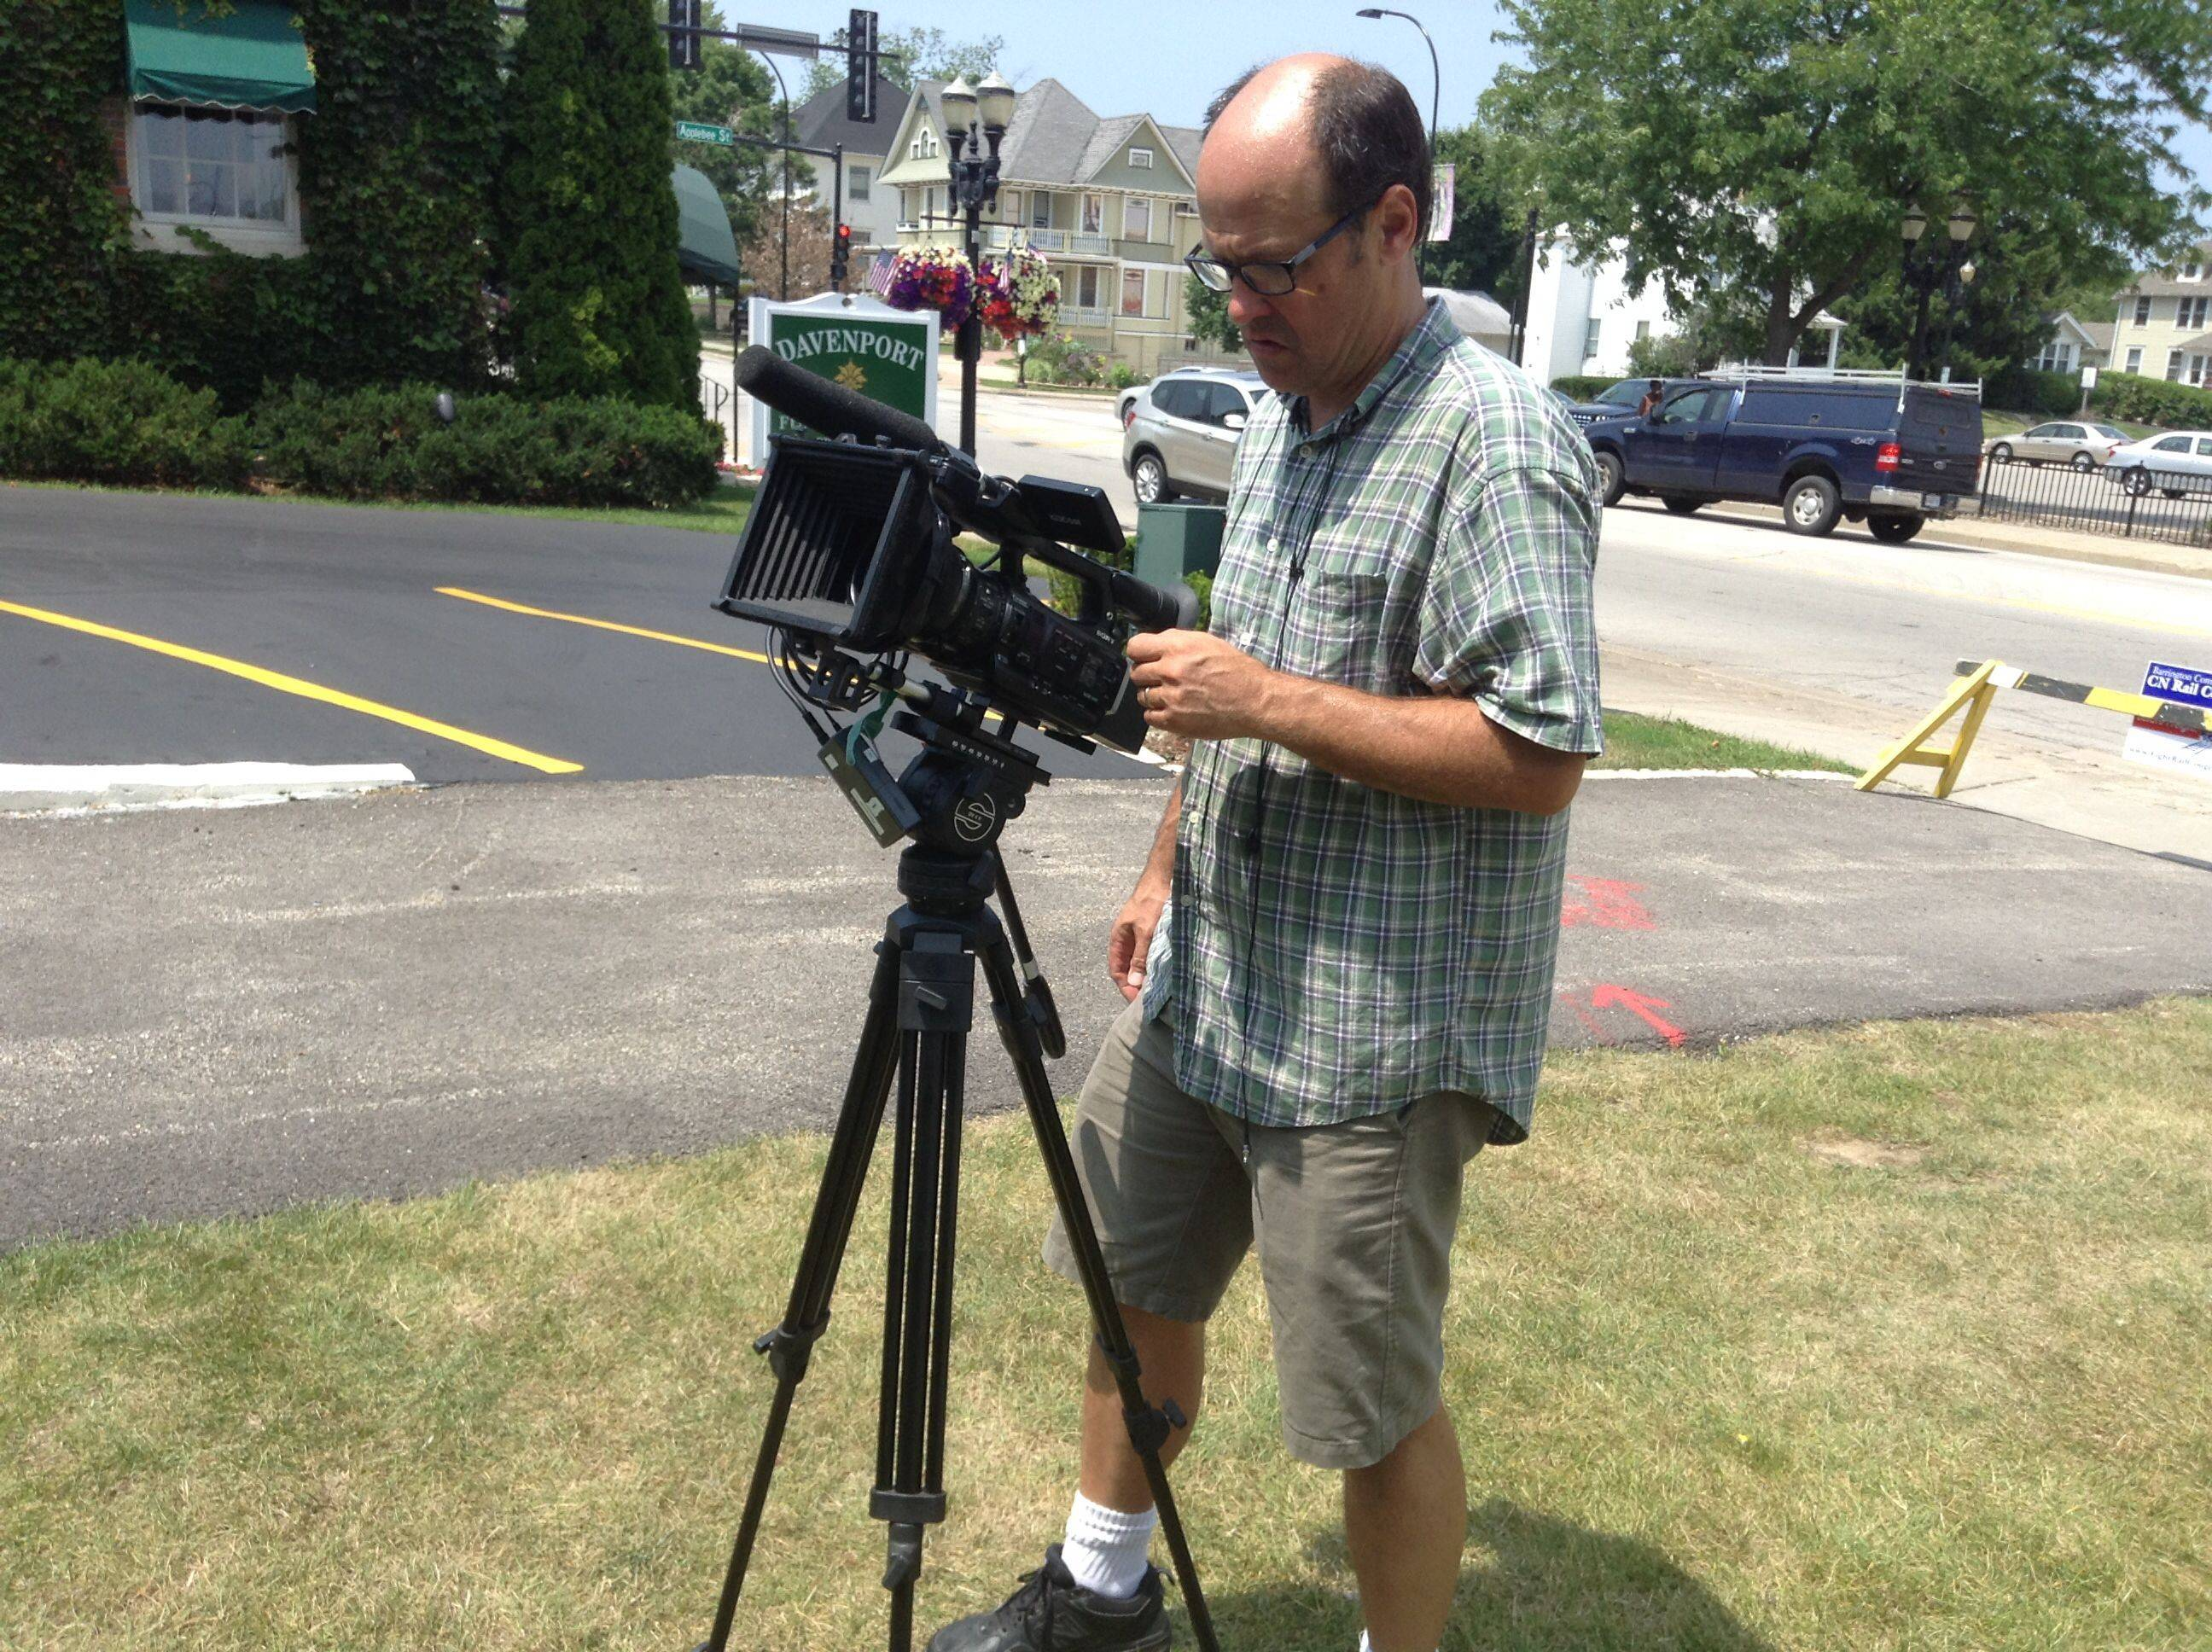 Jeff Baustert films the Barrington White House as part of a documentary he is working on about the renovation project. Baustert has worked in the movie industry in Hollywood since 1987.